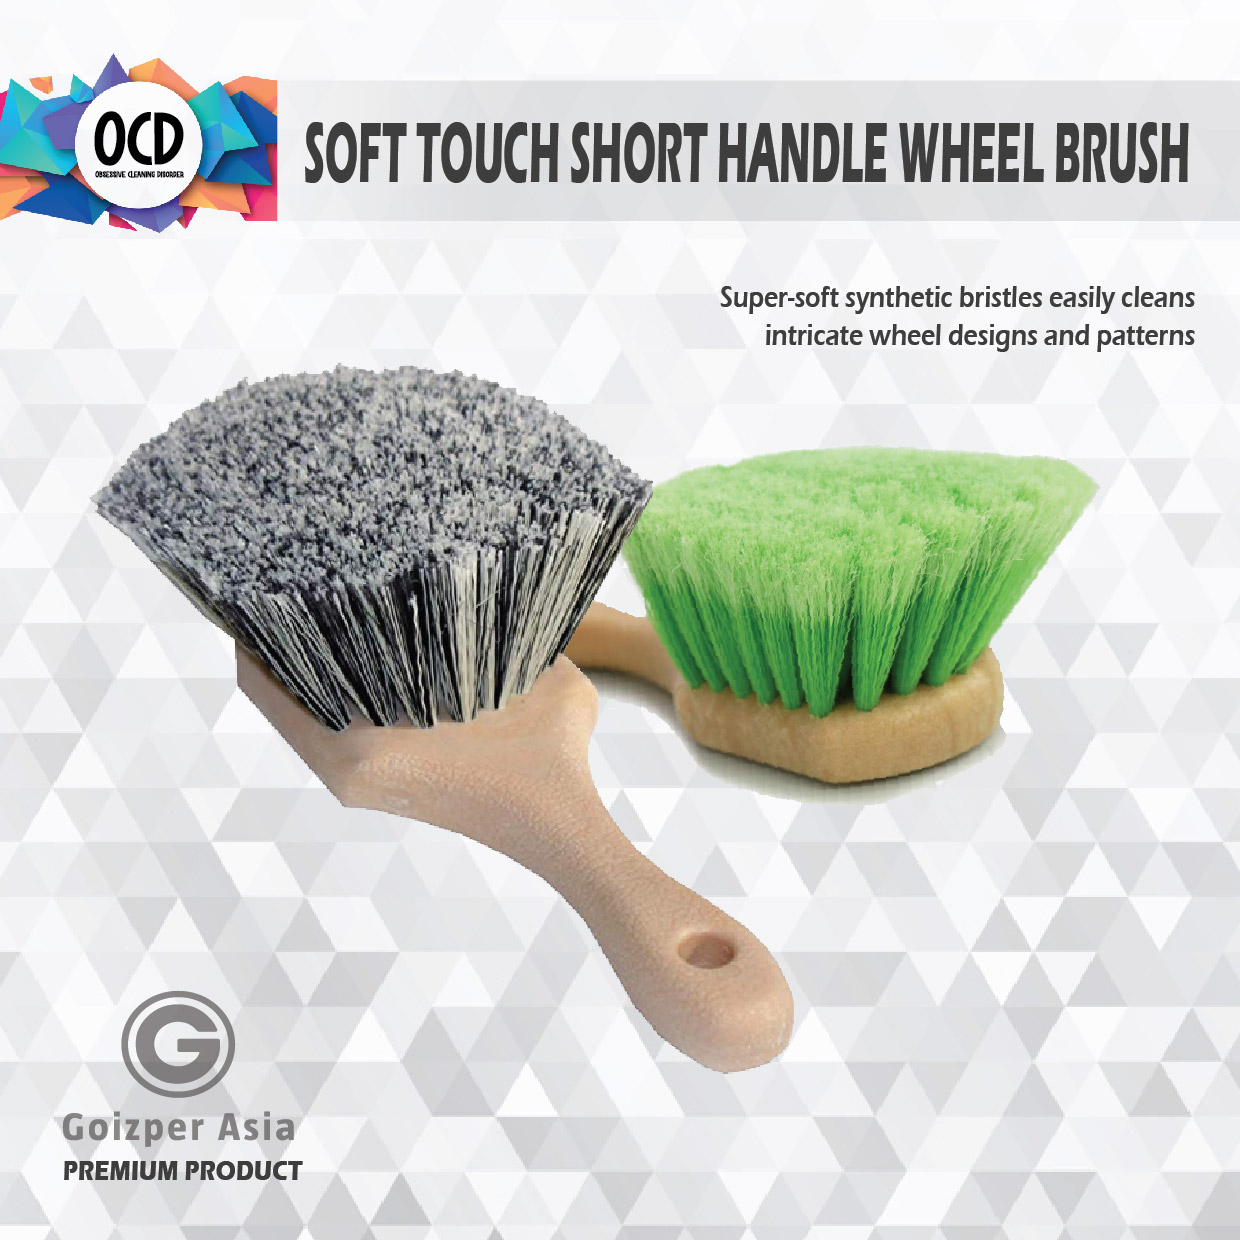 Ocd Soft Touch Short Handle Wheel Brush - Super-Soft Synthetic Bristles Easily Cleans Intricate Wheel Designs And Patterns.